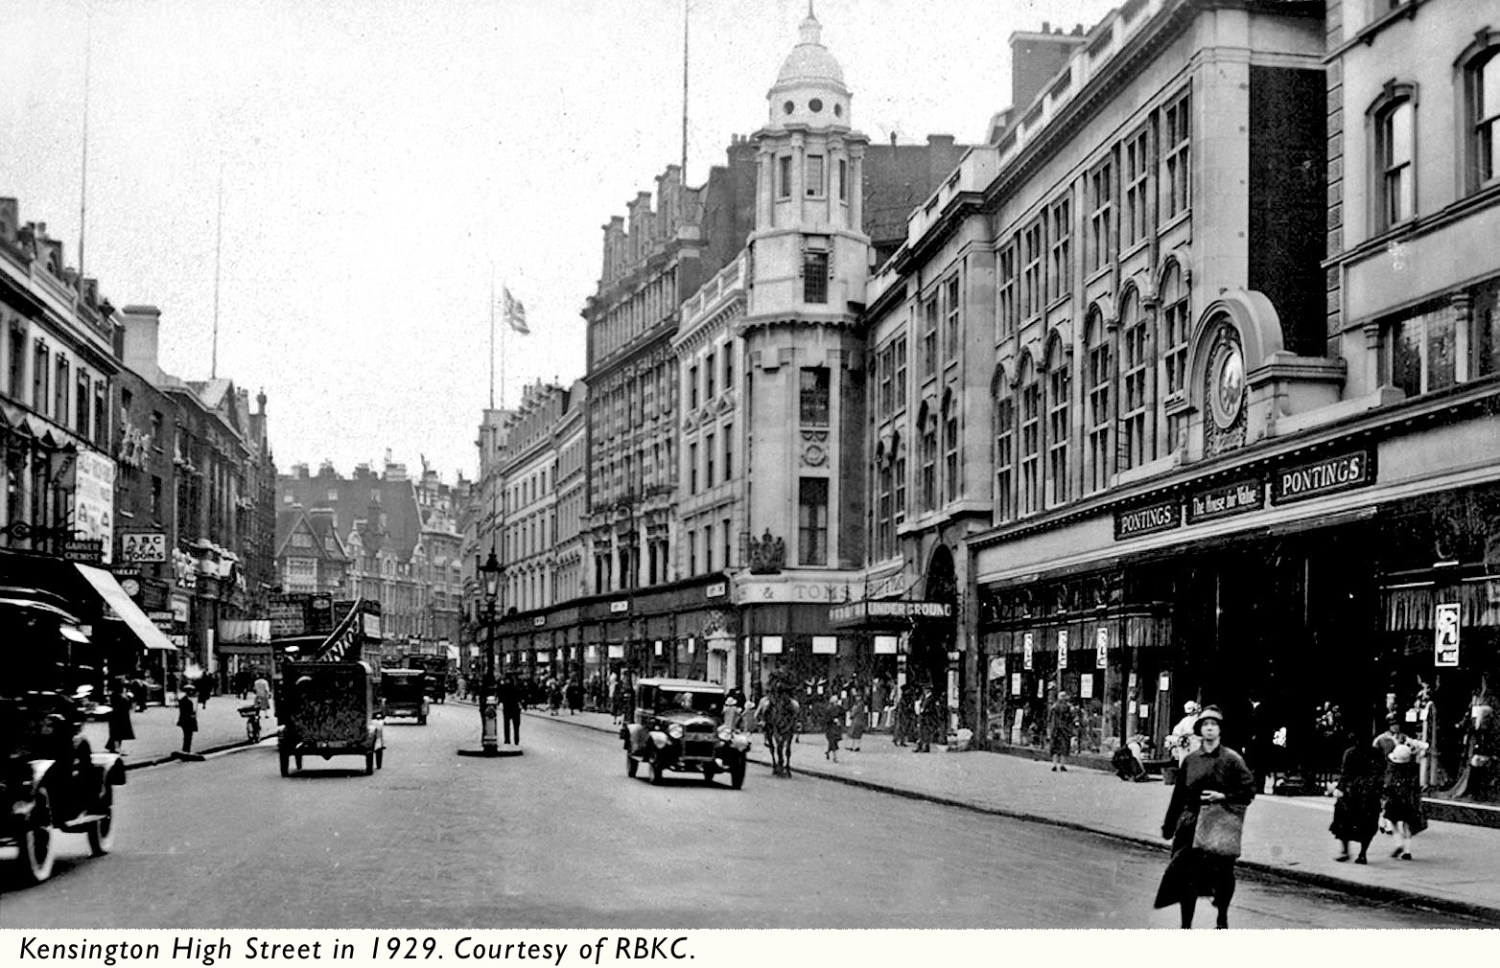 Kensington-High-Street-1929-caption